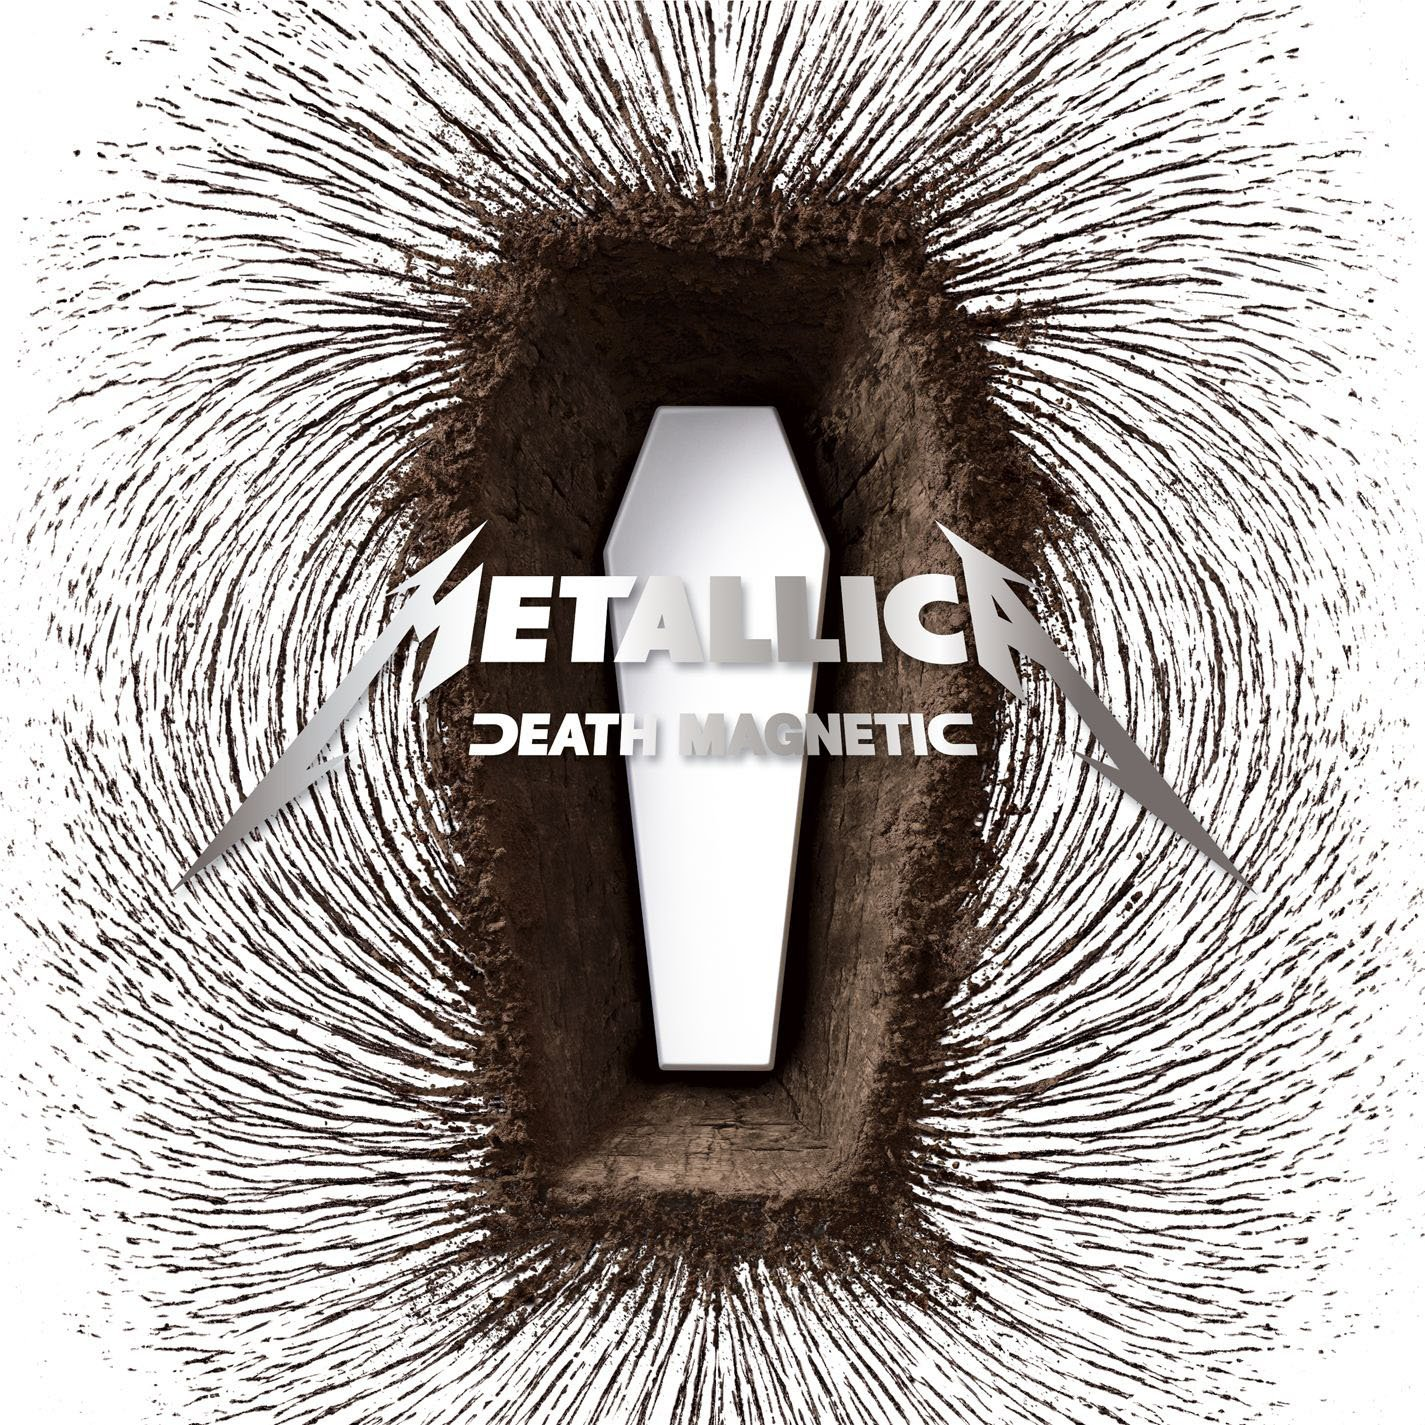 CD : Metallica - Death Magnetic (CD)